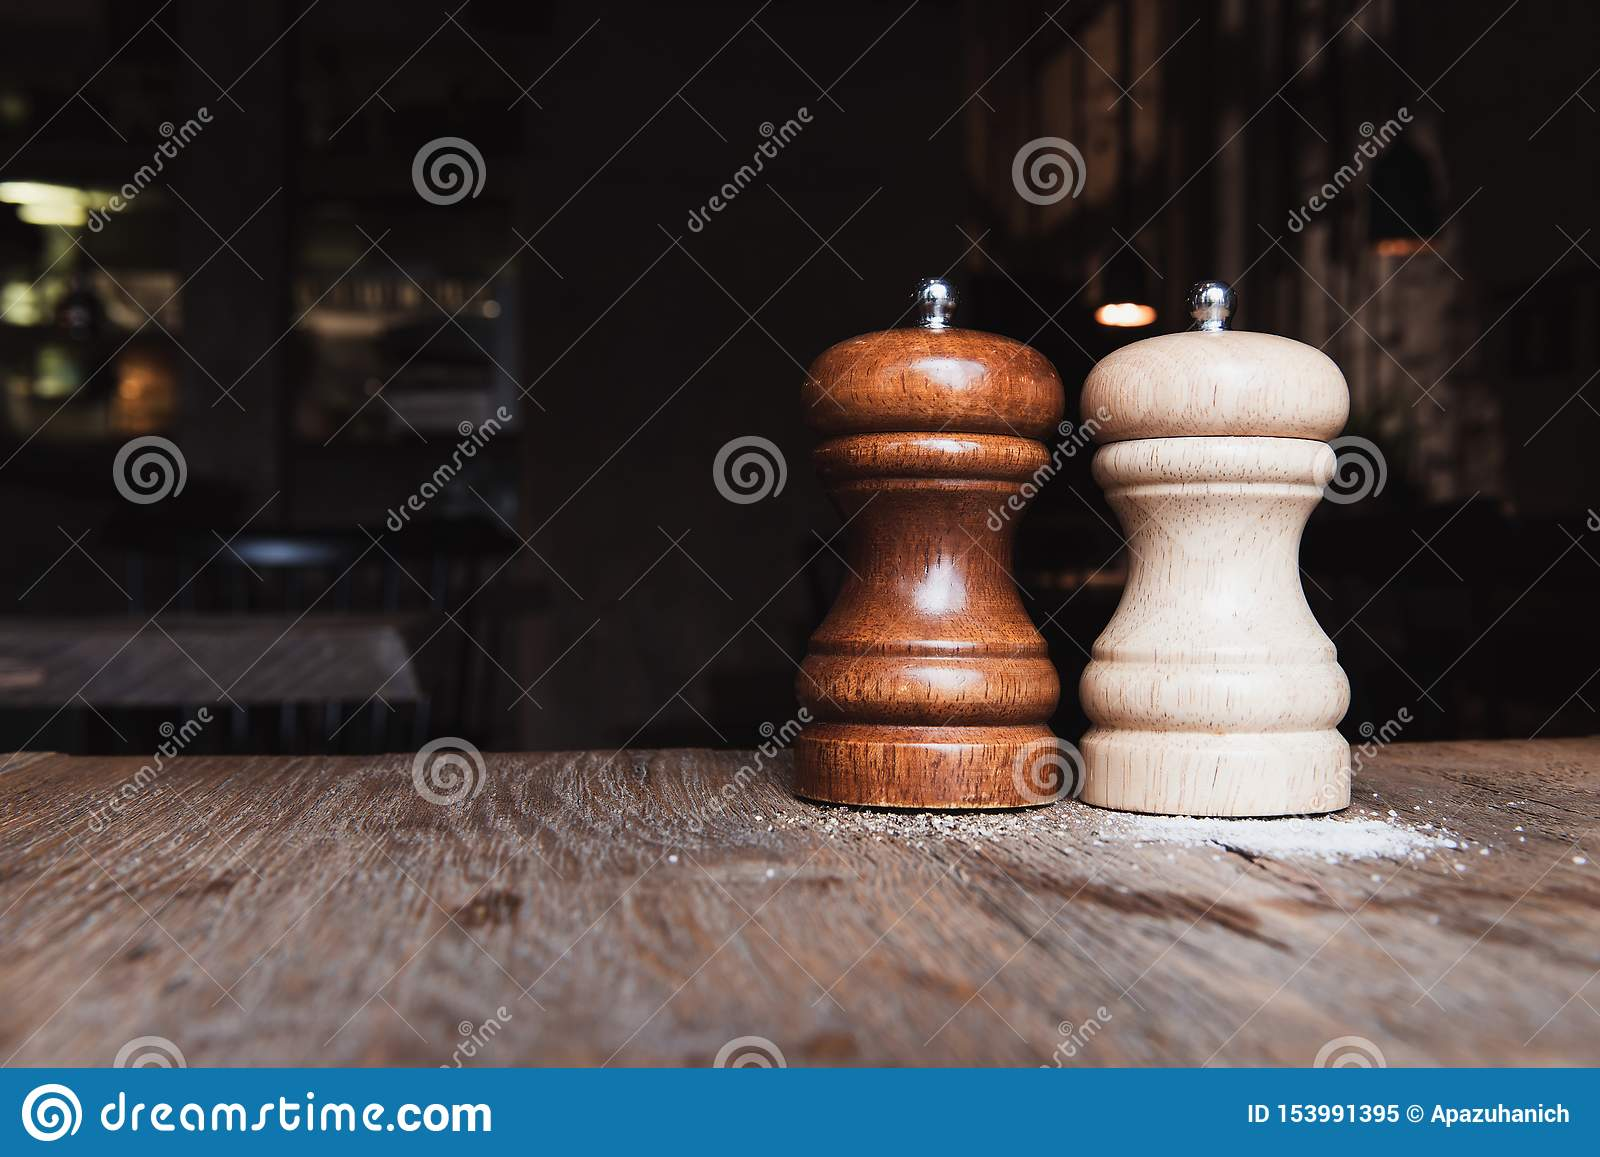 Wooden Salt And Pepper Mills On A Wooden Table Stock Image Image Of Shaker Spices 153991395